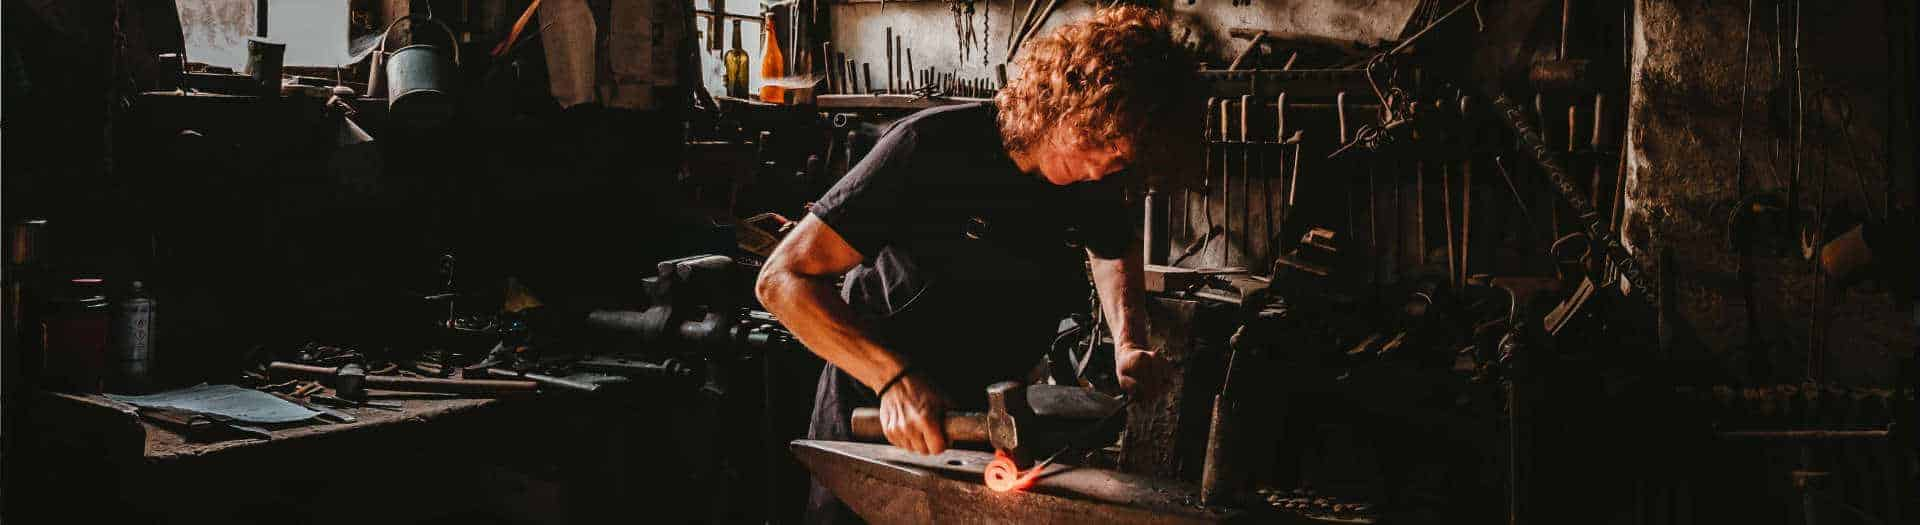 Luxury her blacksmith 1920 x 525 - British made luxury handcrafted unique gifts for her